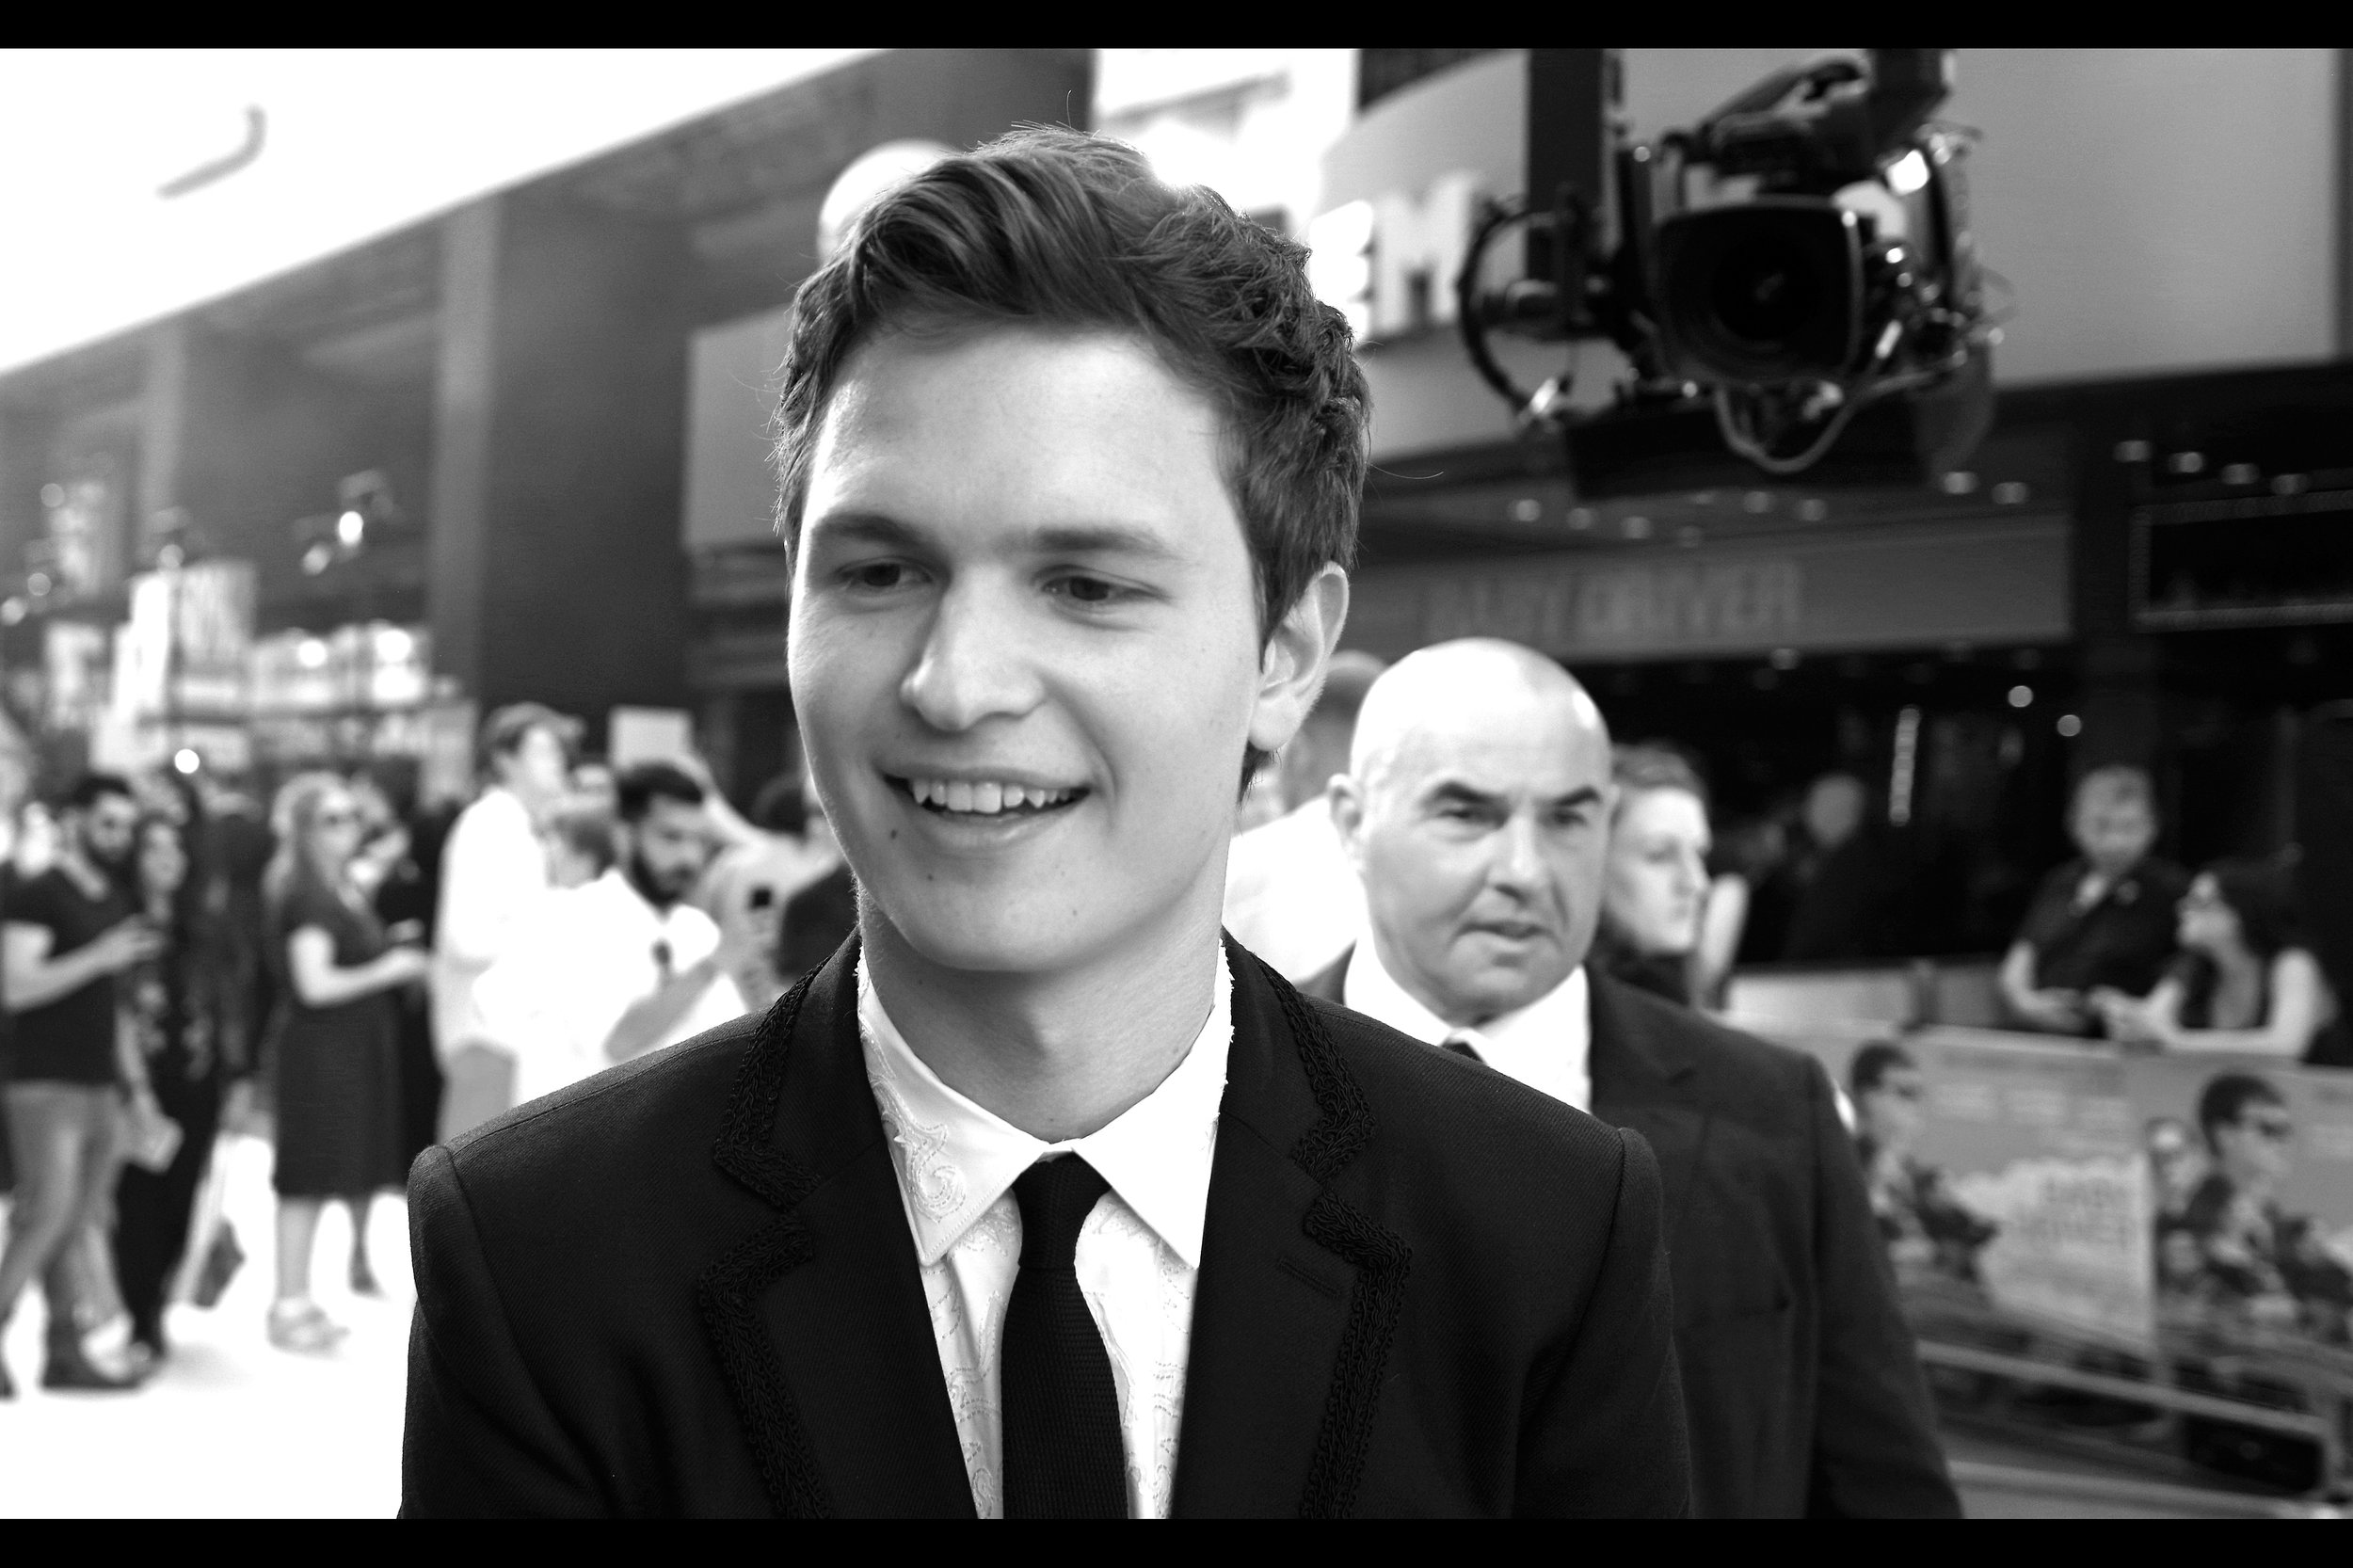 """You were screaming my name yet I don't even know yours. How weird is that?"" -  I think I last photographed Ansel at   the premiere of ""Men Women and Children"" back in 2014 ."